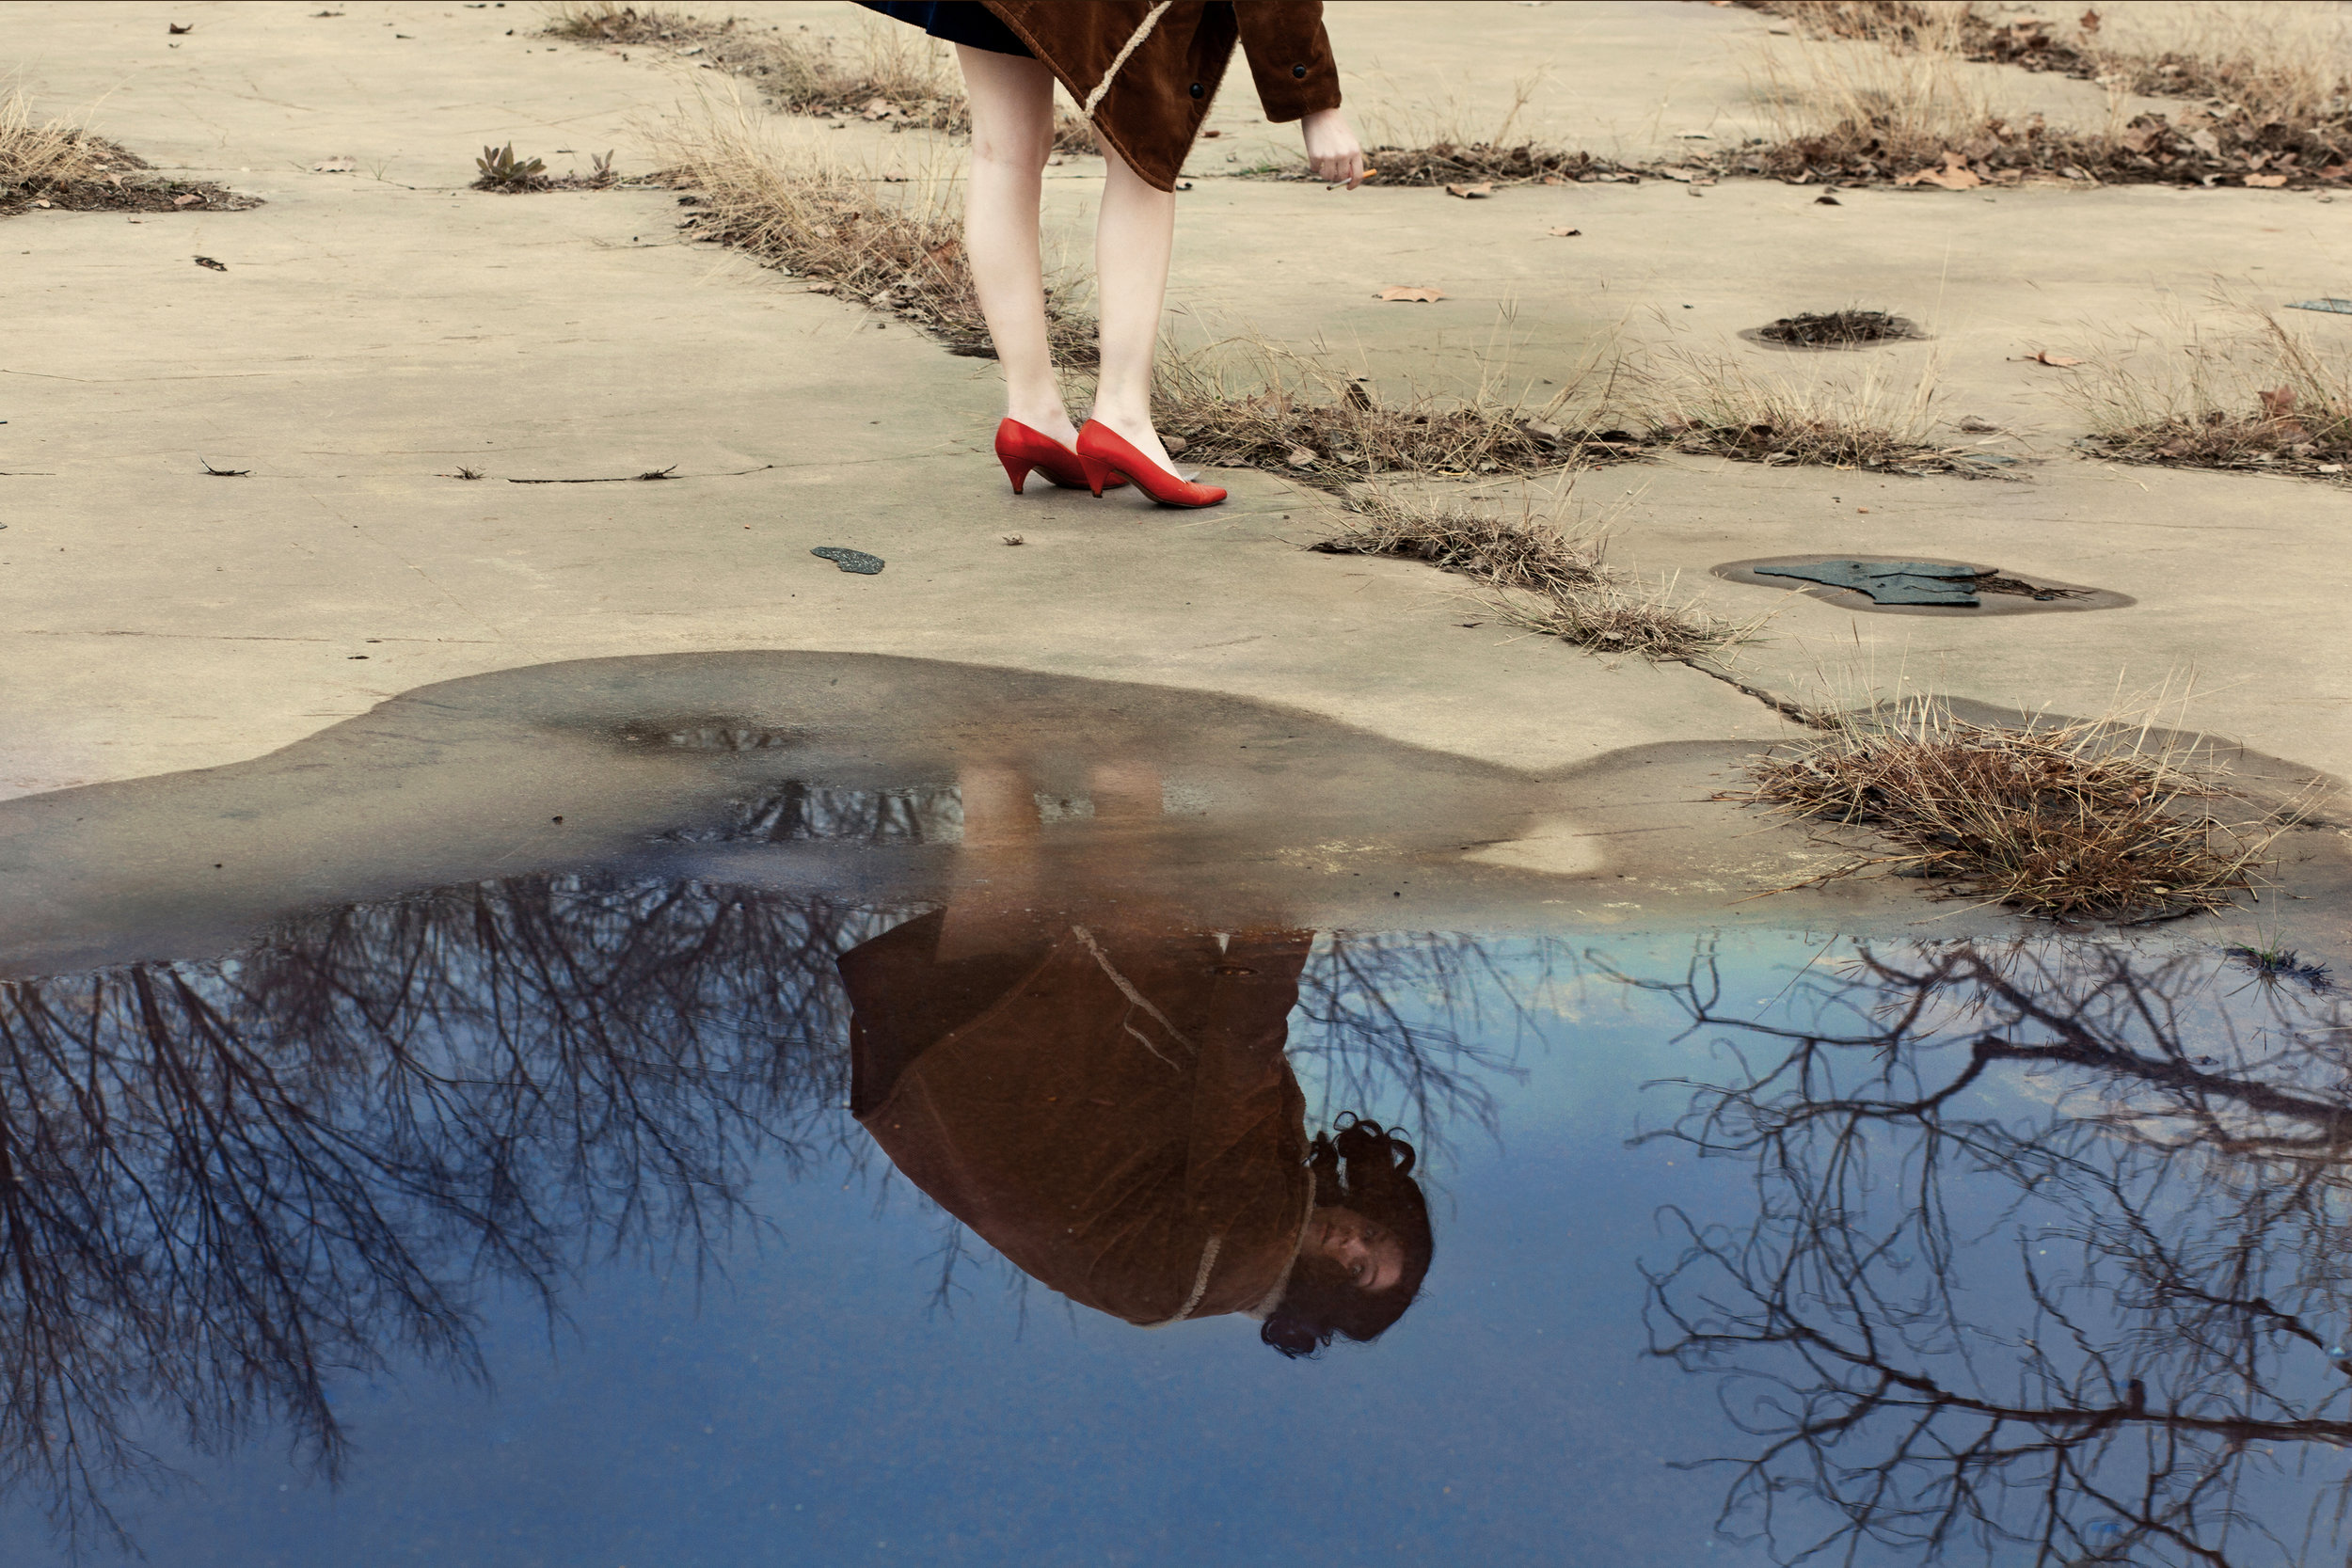 12x18-red-shoes-.jpg